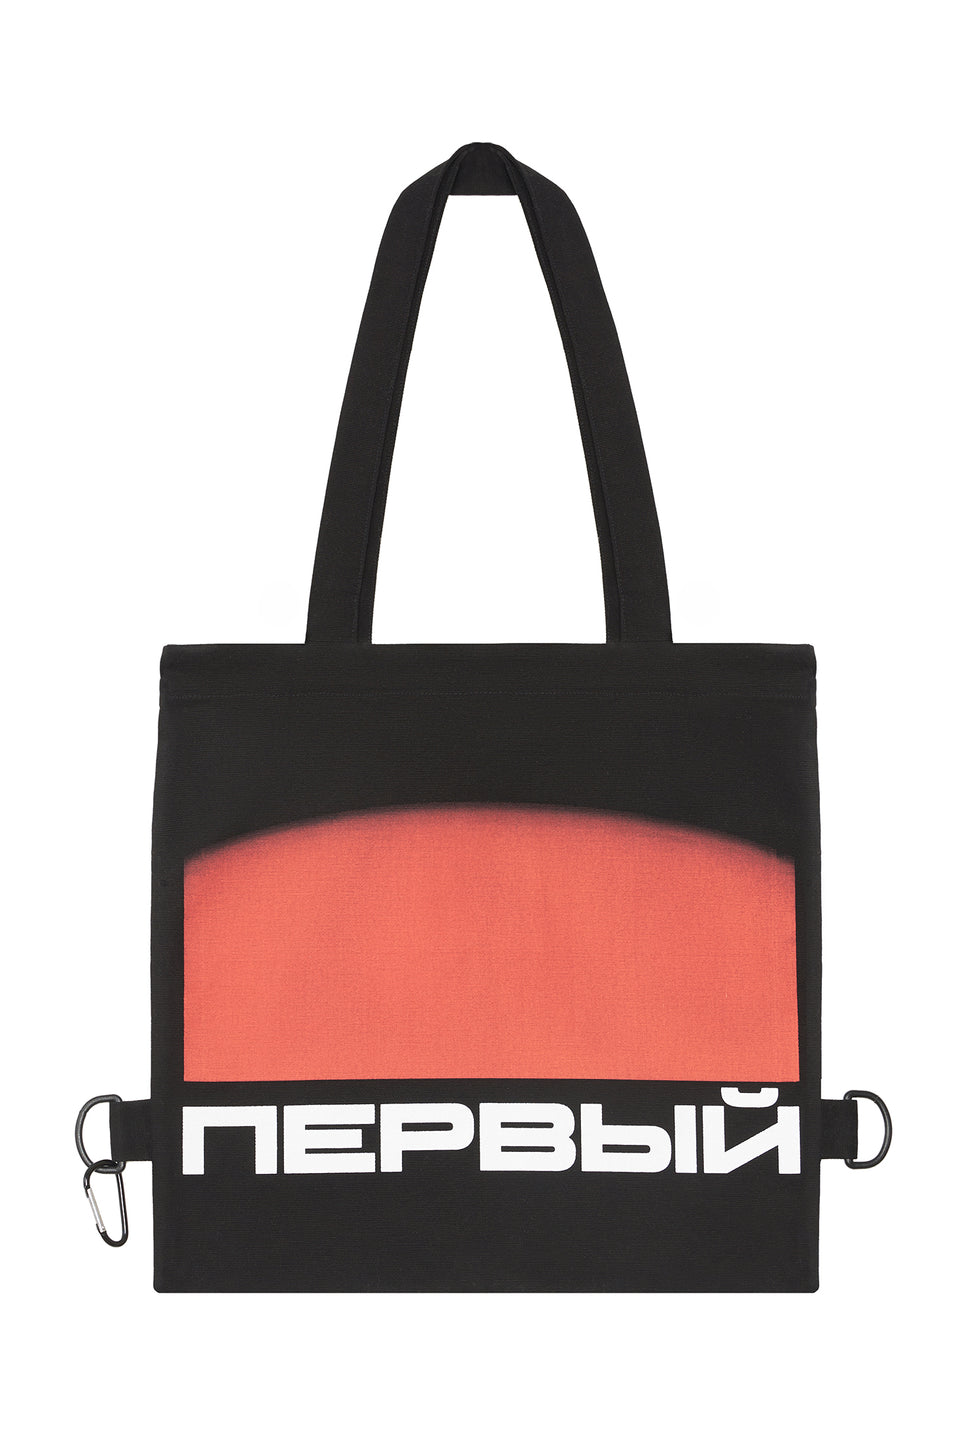 Tote bag FIRST/ПЕРВЫЙ black